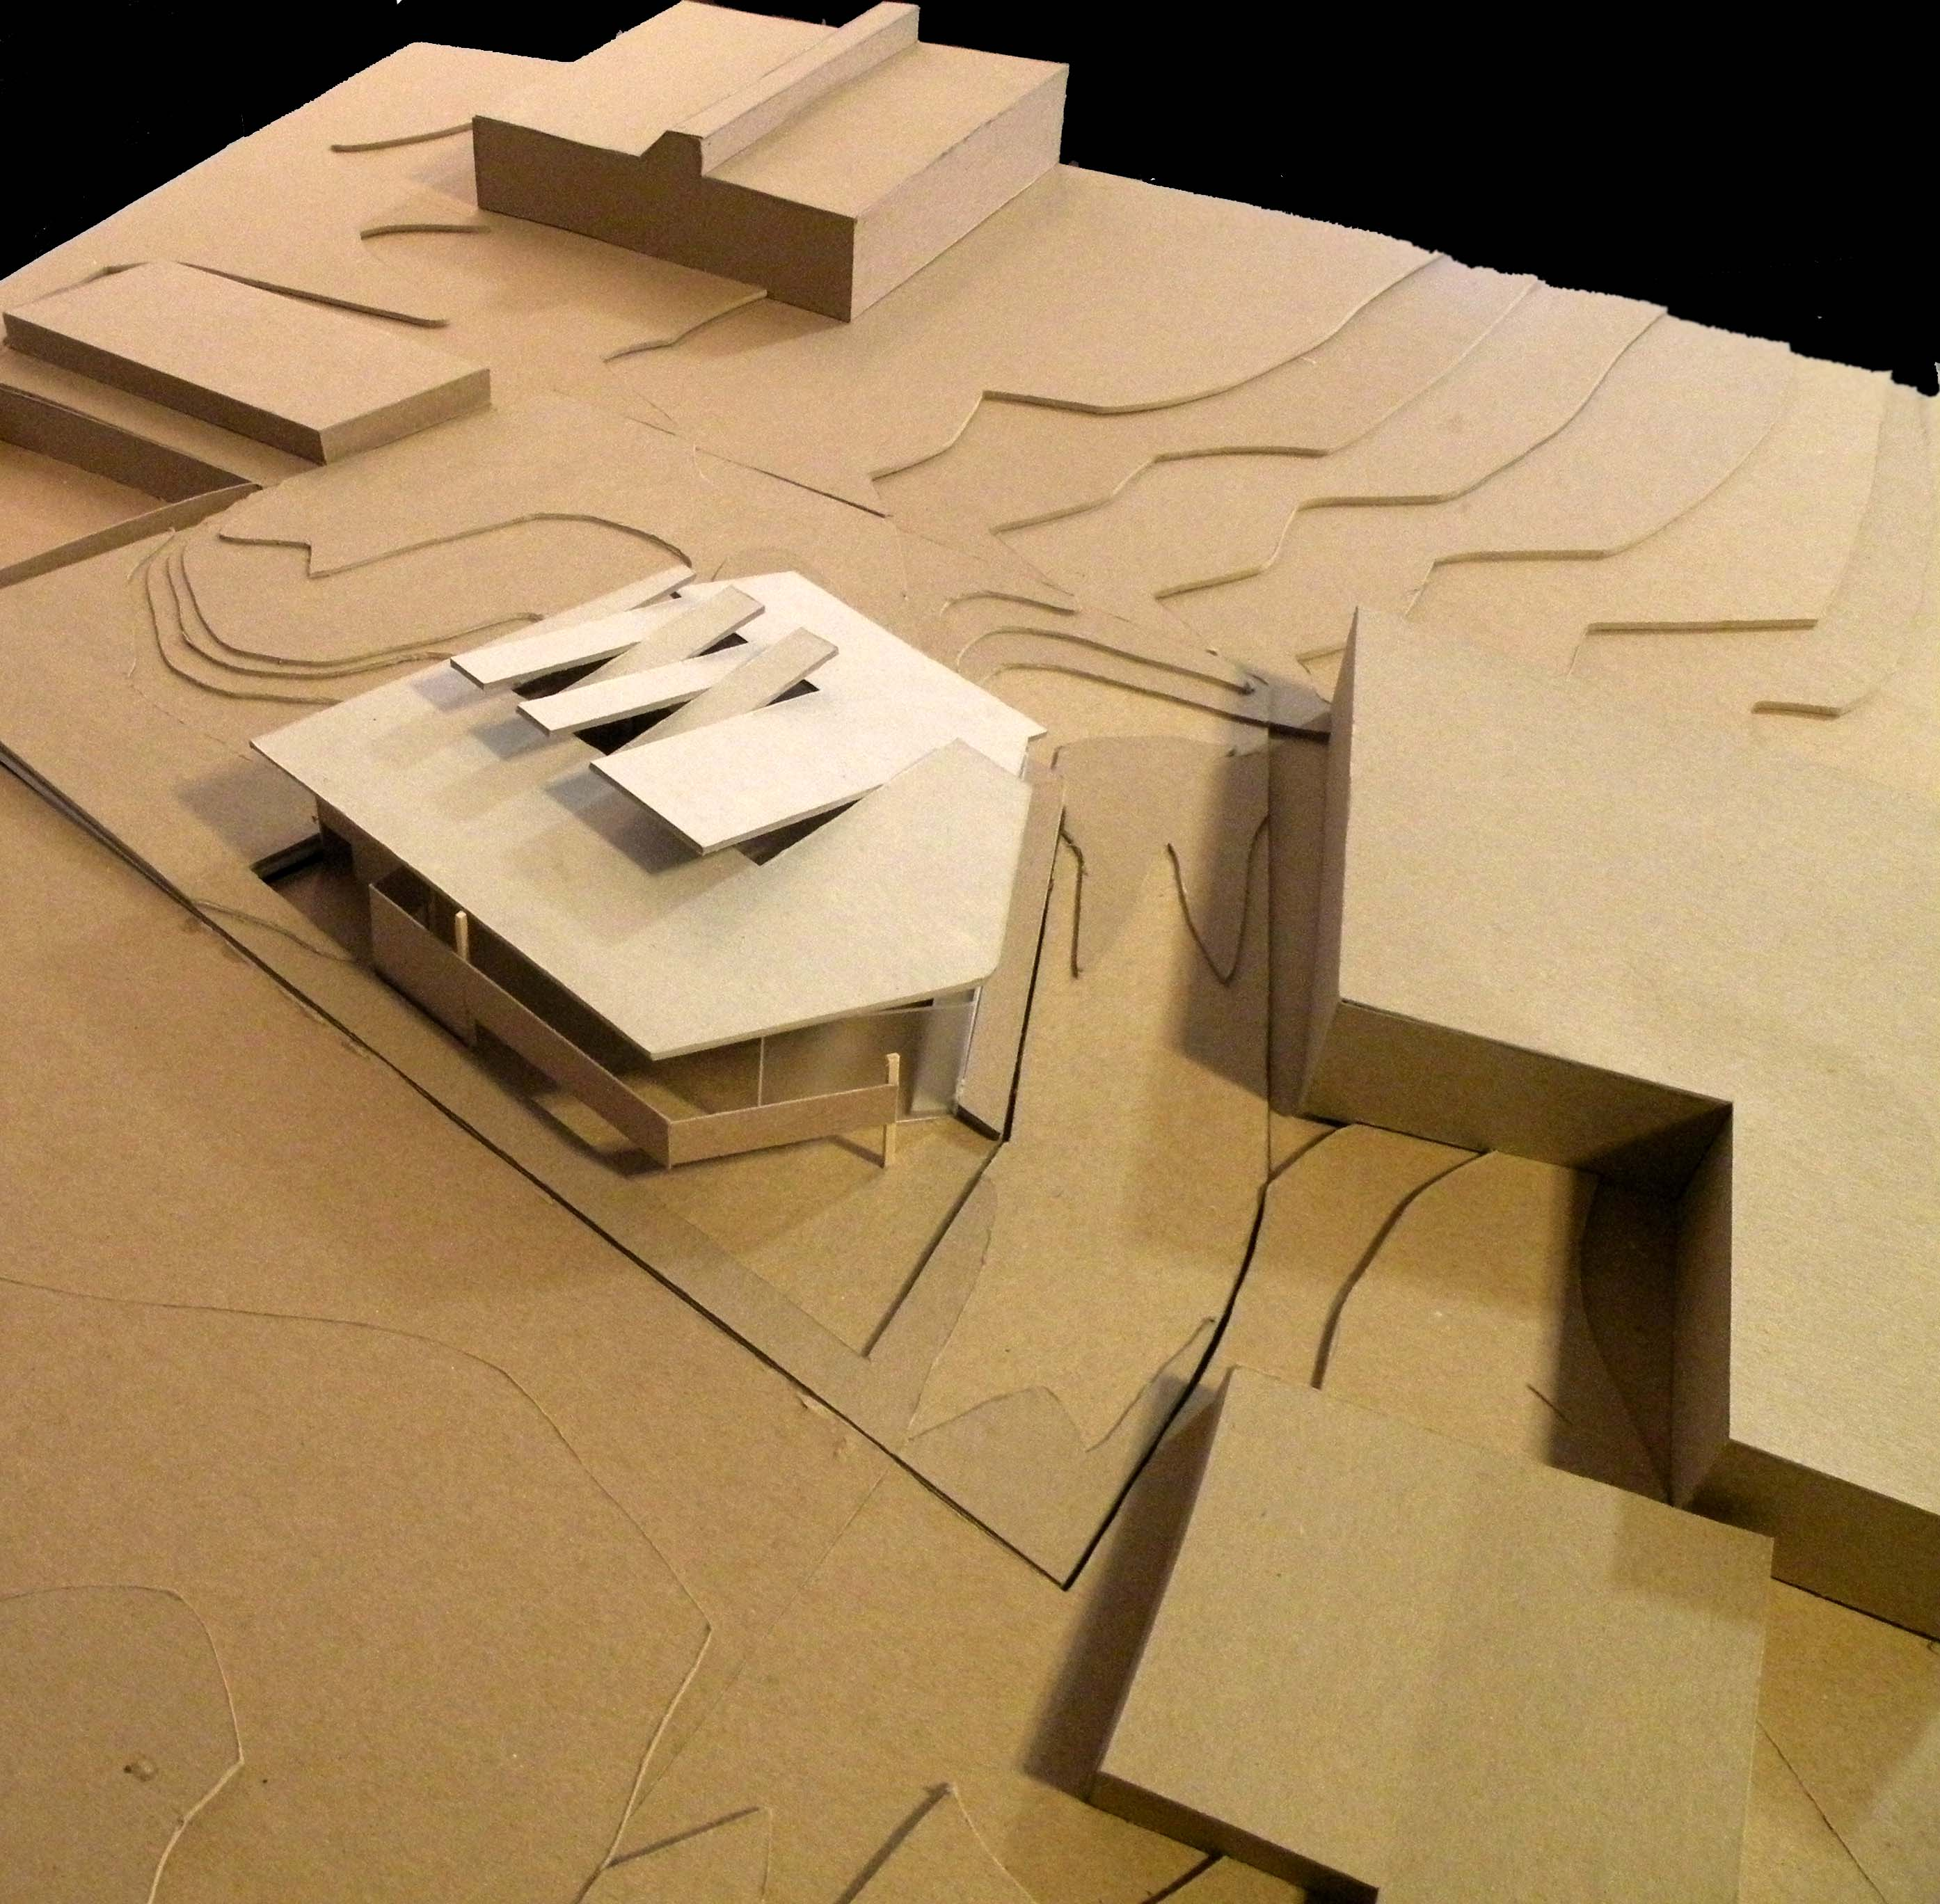 Building Model in Site